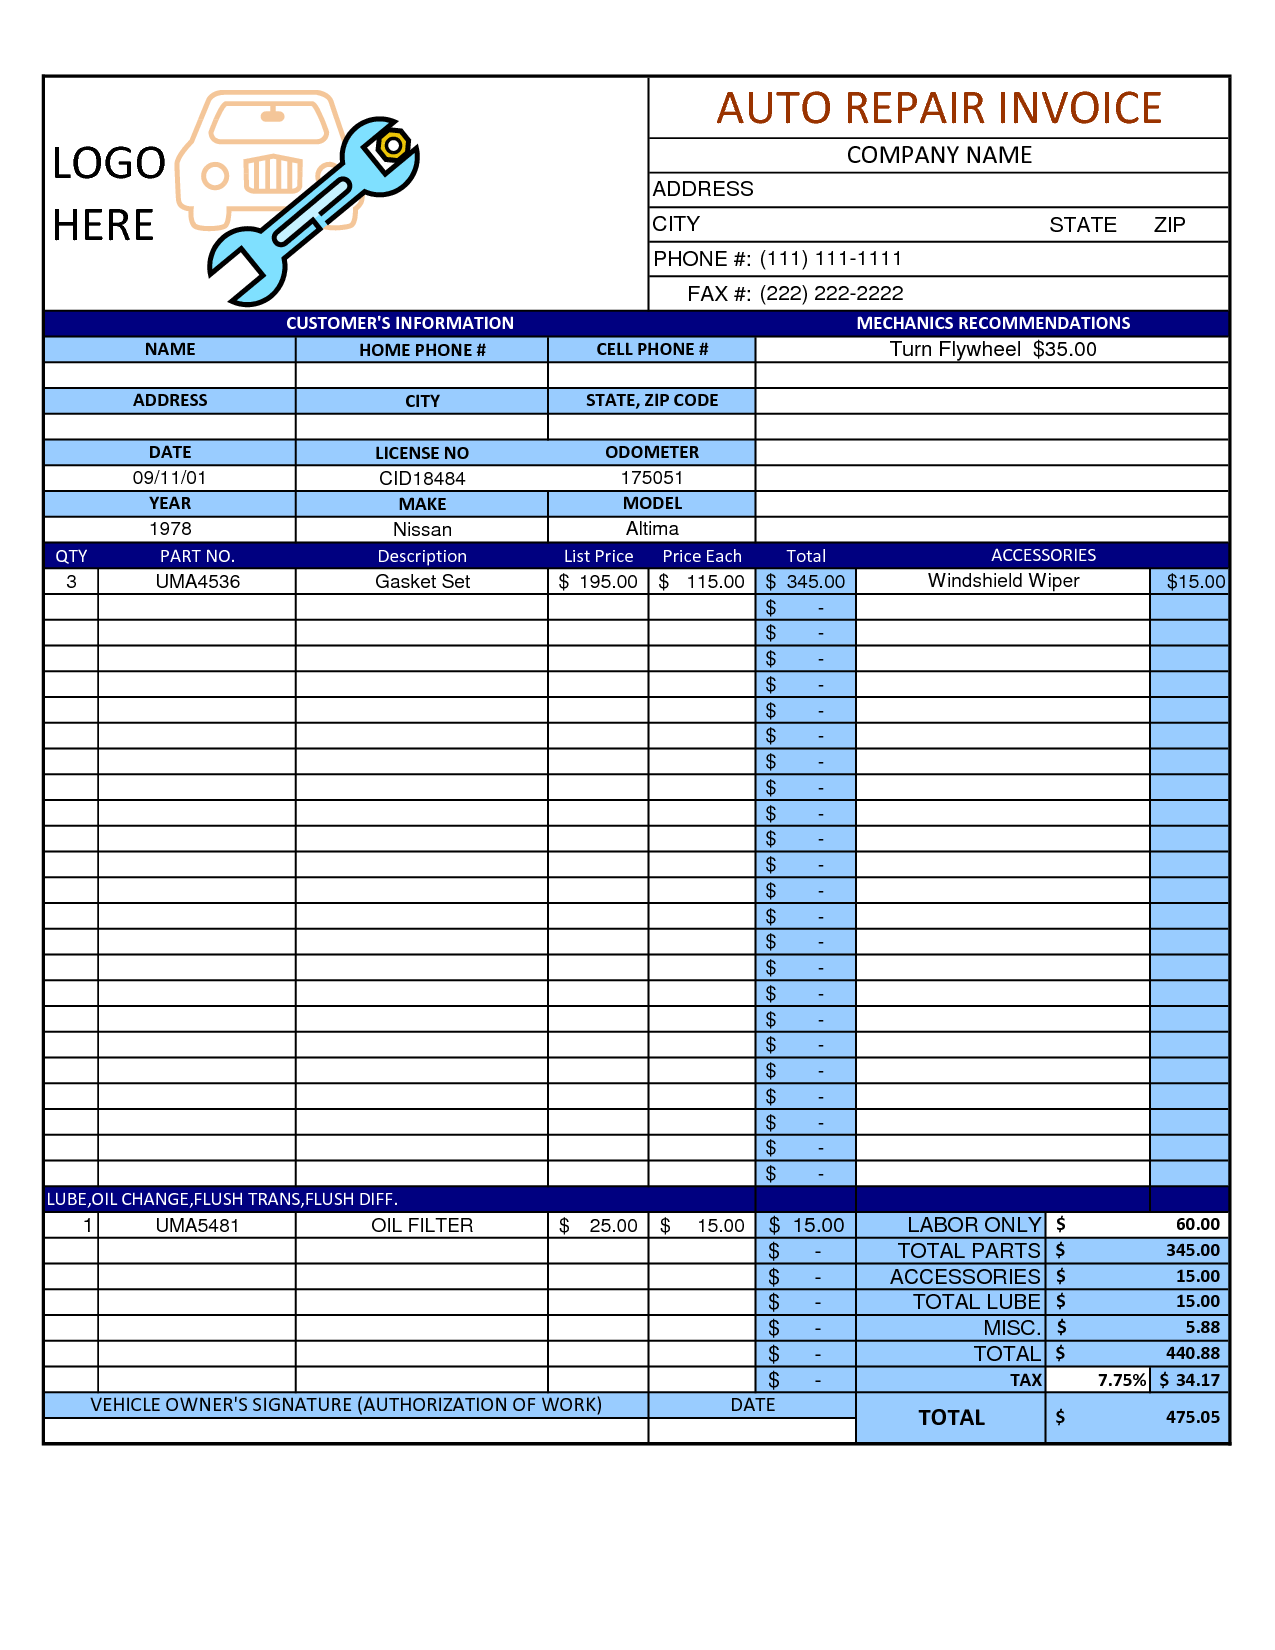 Mechanic Shop Invoice Scope Of Work Template Pinteres - Mechanic shop invoice templates